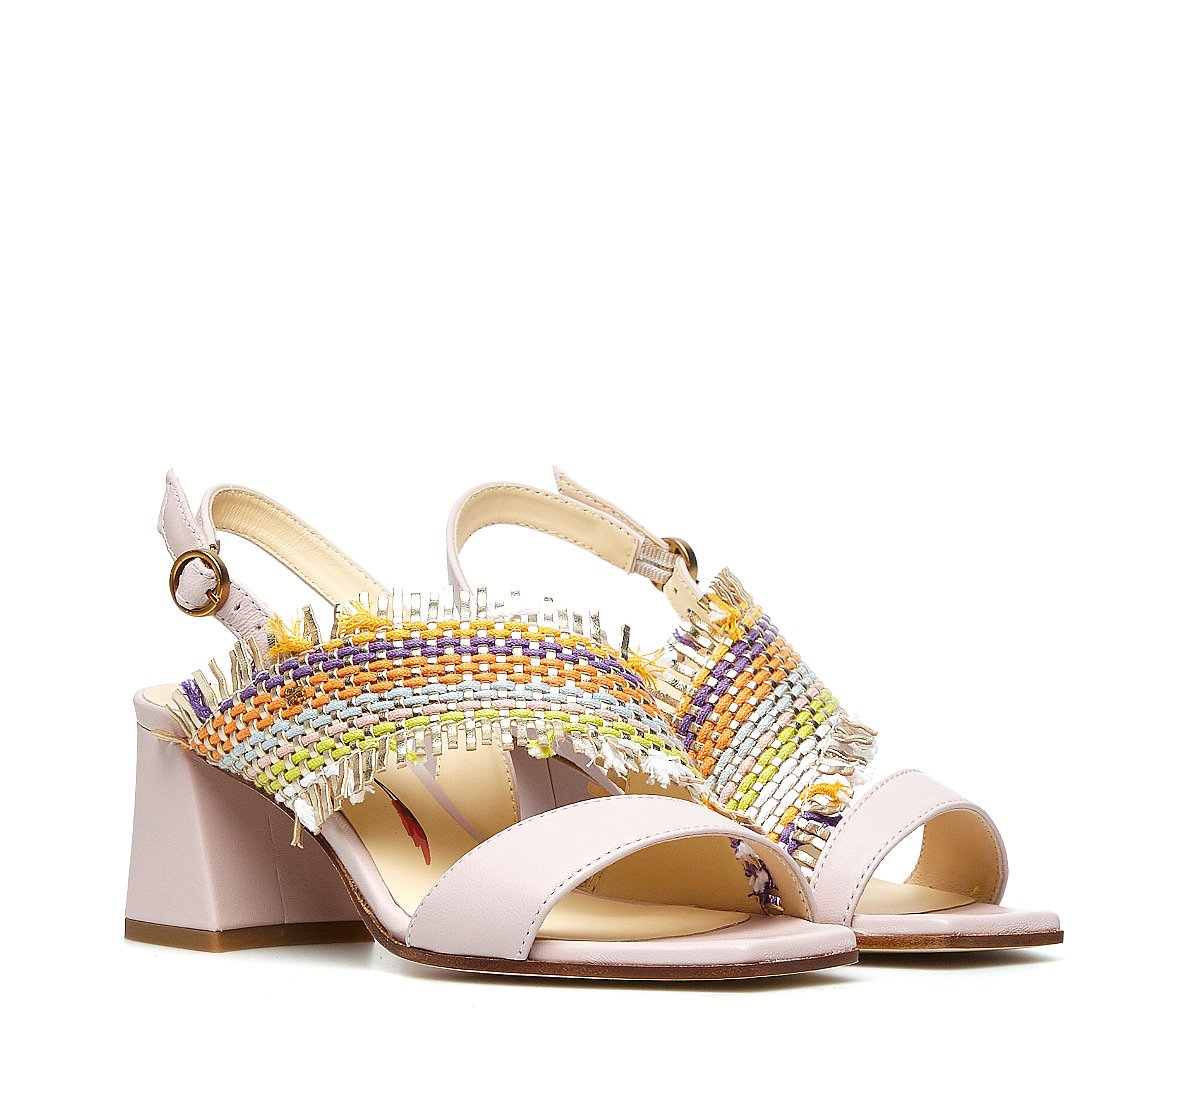 Fabric and calfskin sandals